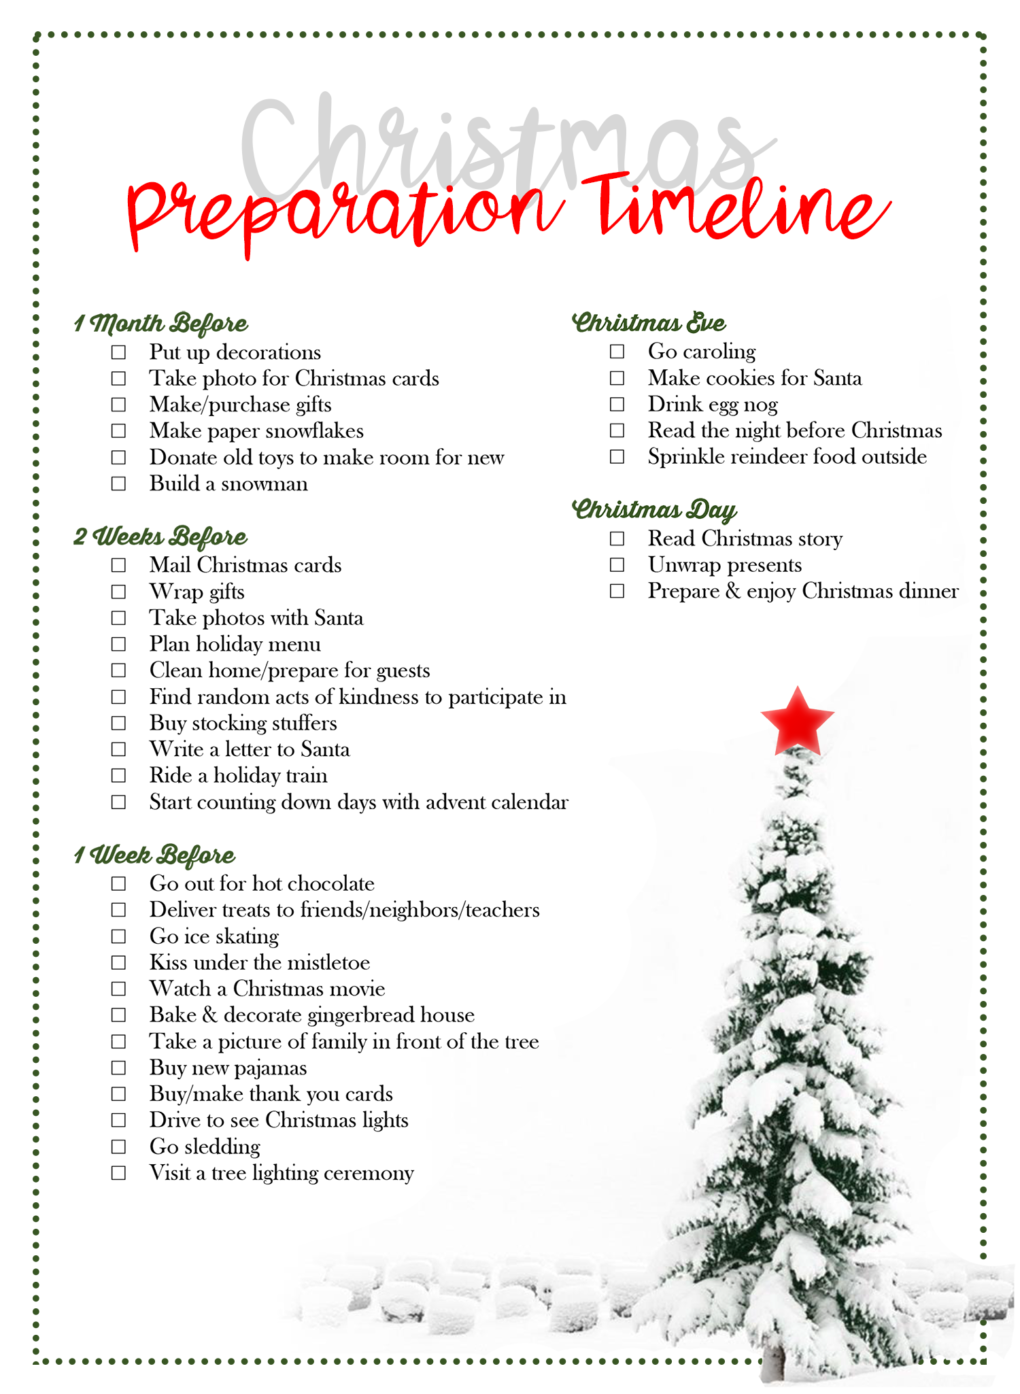 Christmas Preparation Timeline [by Laurel Smith] - The DIY Lighthouse #christmas